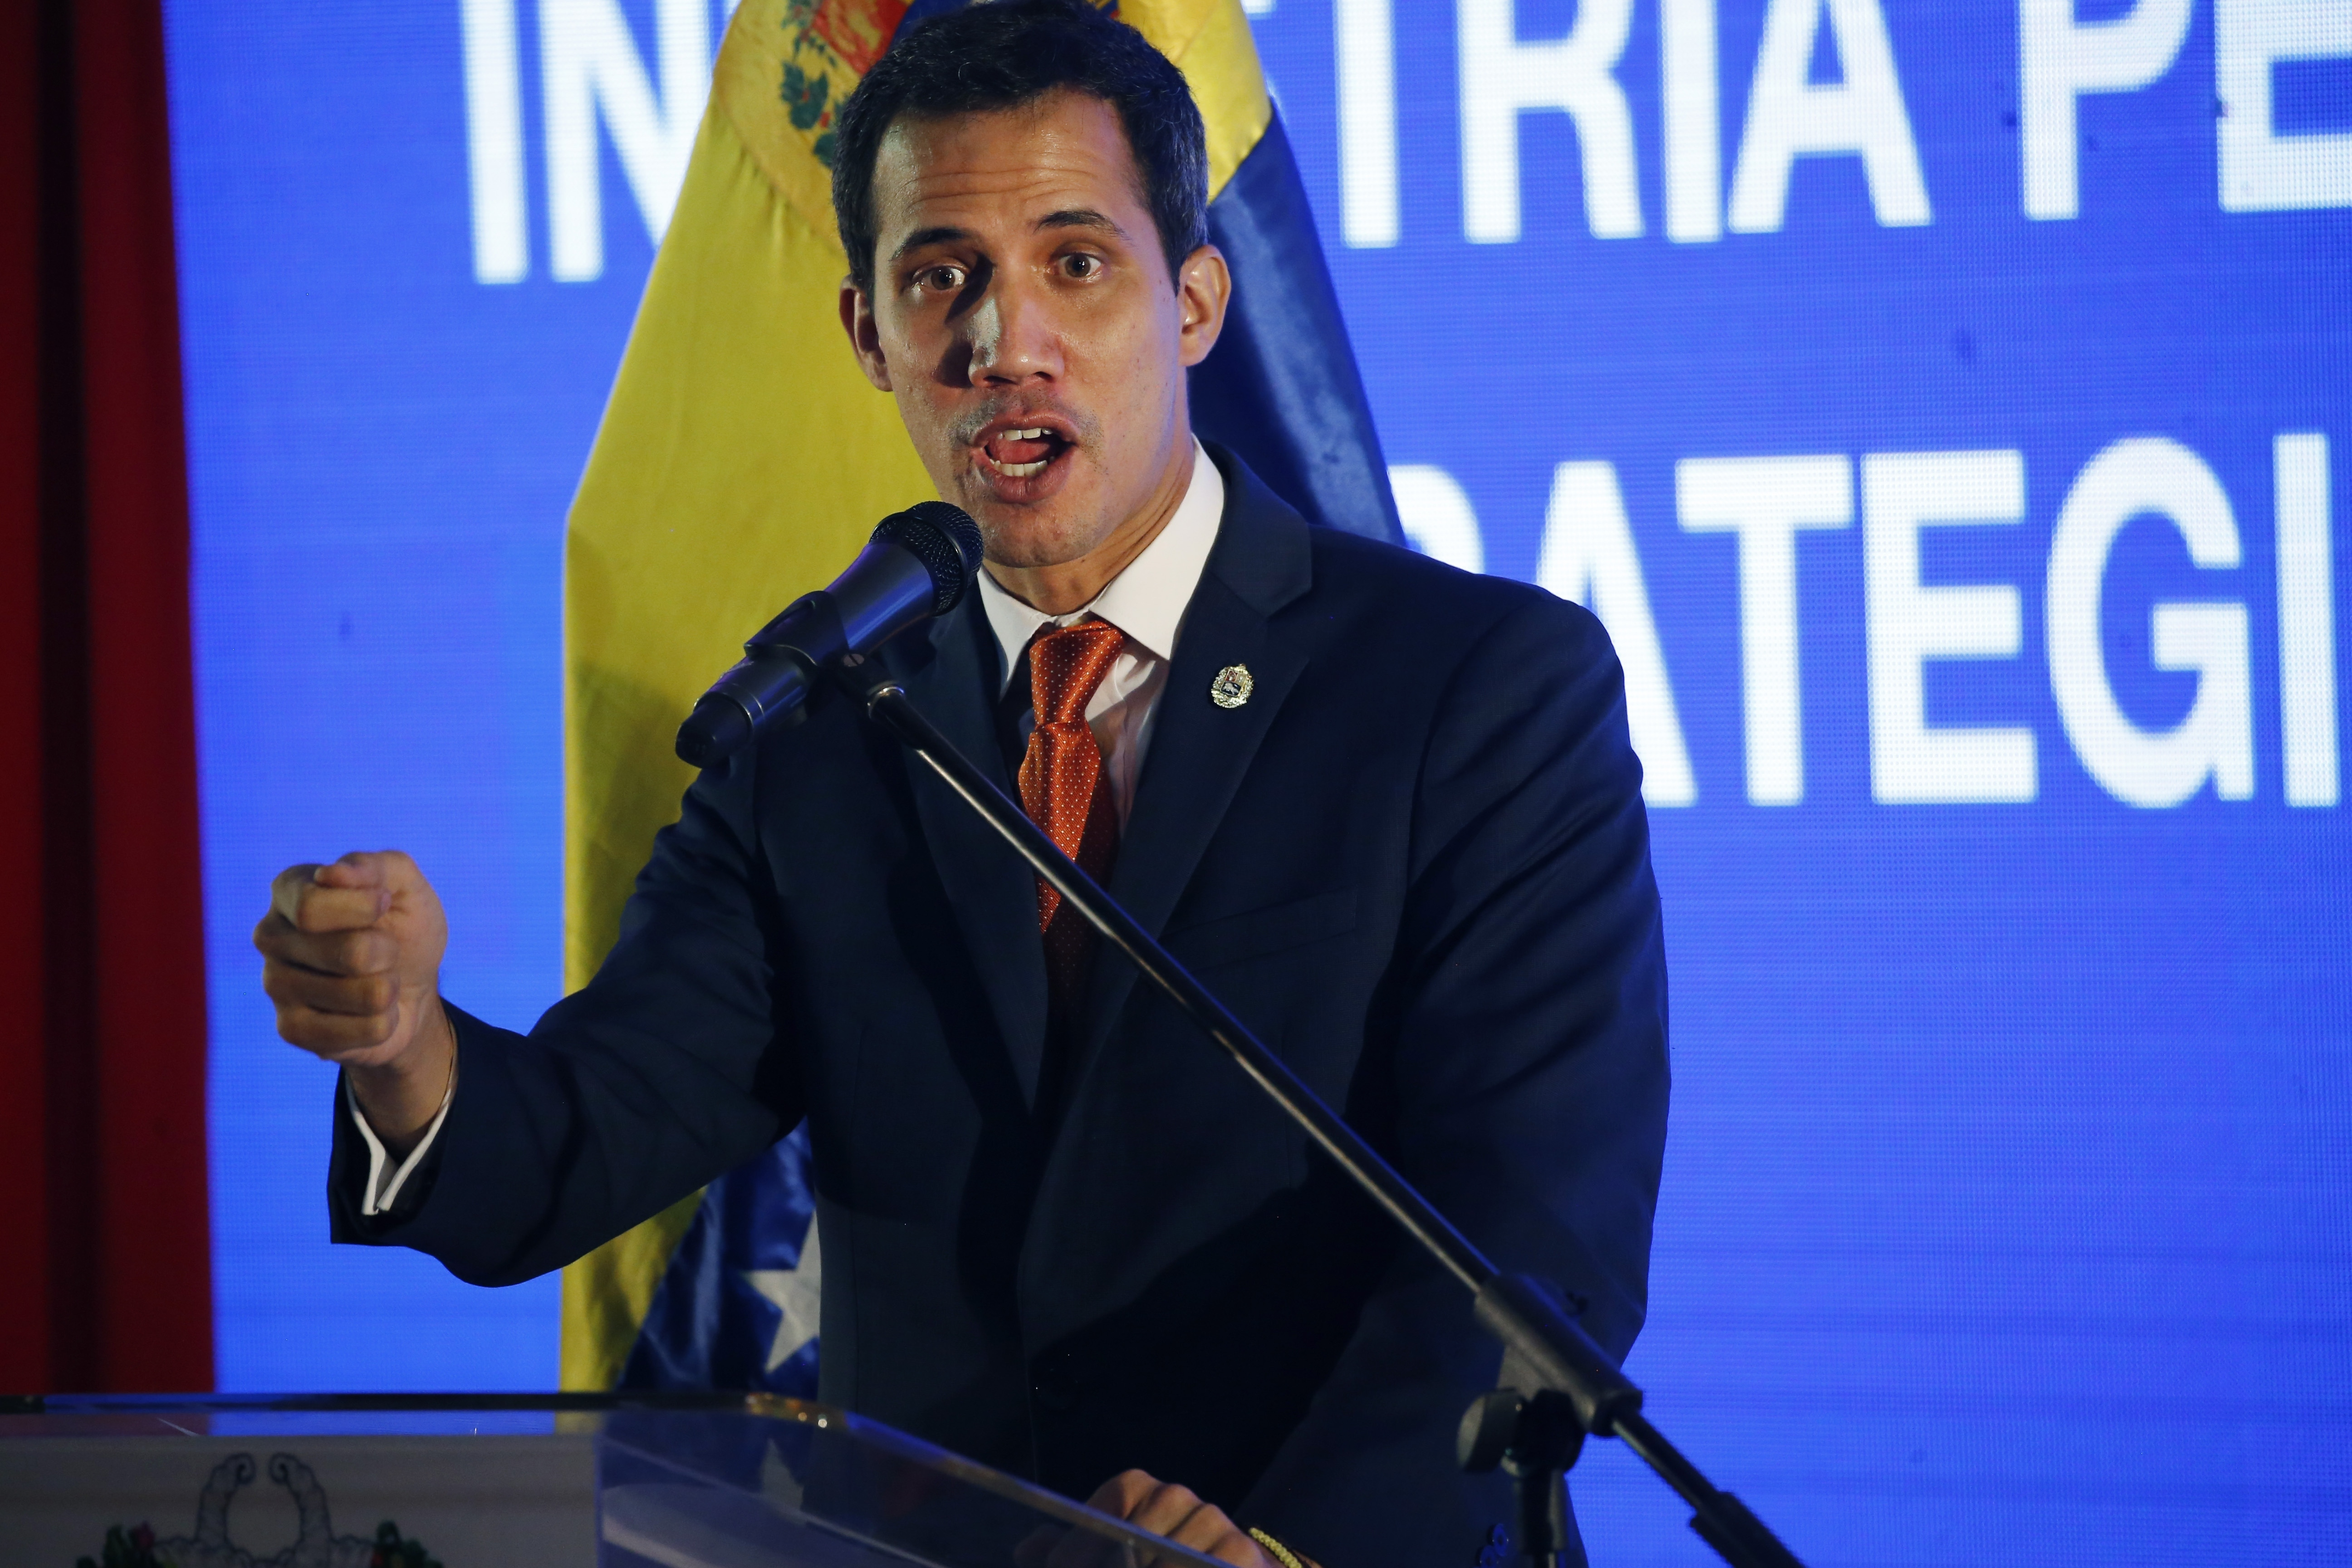 Venezuela's self-proclaimed interim president Juan Guaido, speaks during an economic forum in Caracas, Venezuela, Friday, Feb. 15, 2019. The Trump administration is sending another large shipment of humanitarian aid to the Venezuelan border in Colombia, for the first time using U.S. military aircraft as it increases pressure on Nicolas Maduro to give up power, according to a State Department email sent to Congress. (AP Photo/Ariana Cubillos)